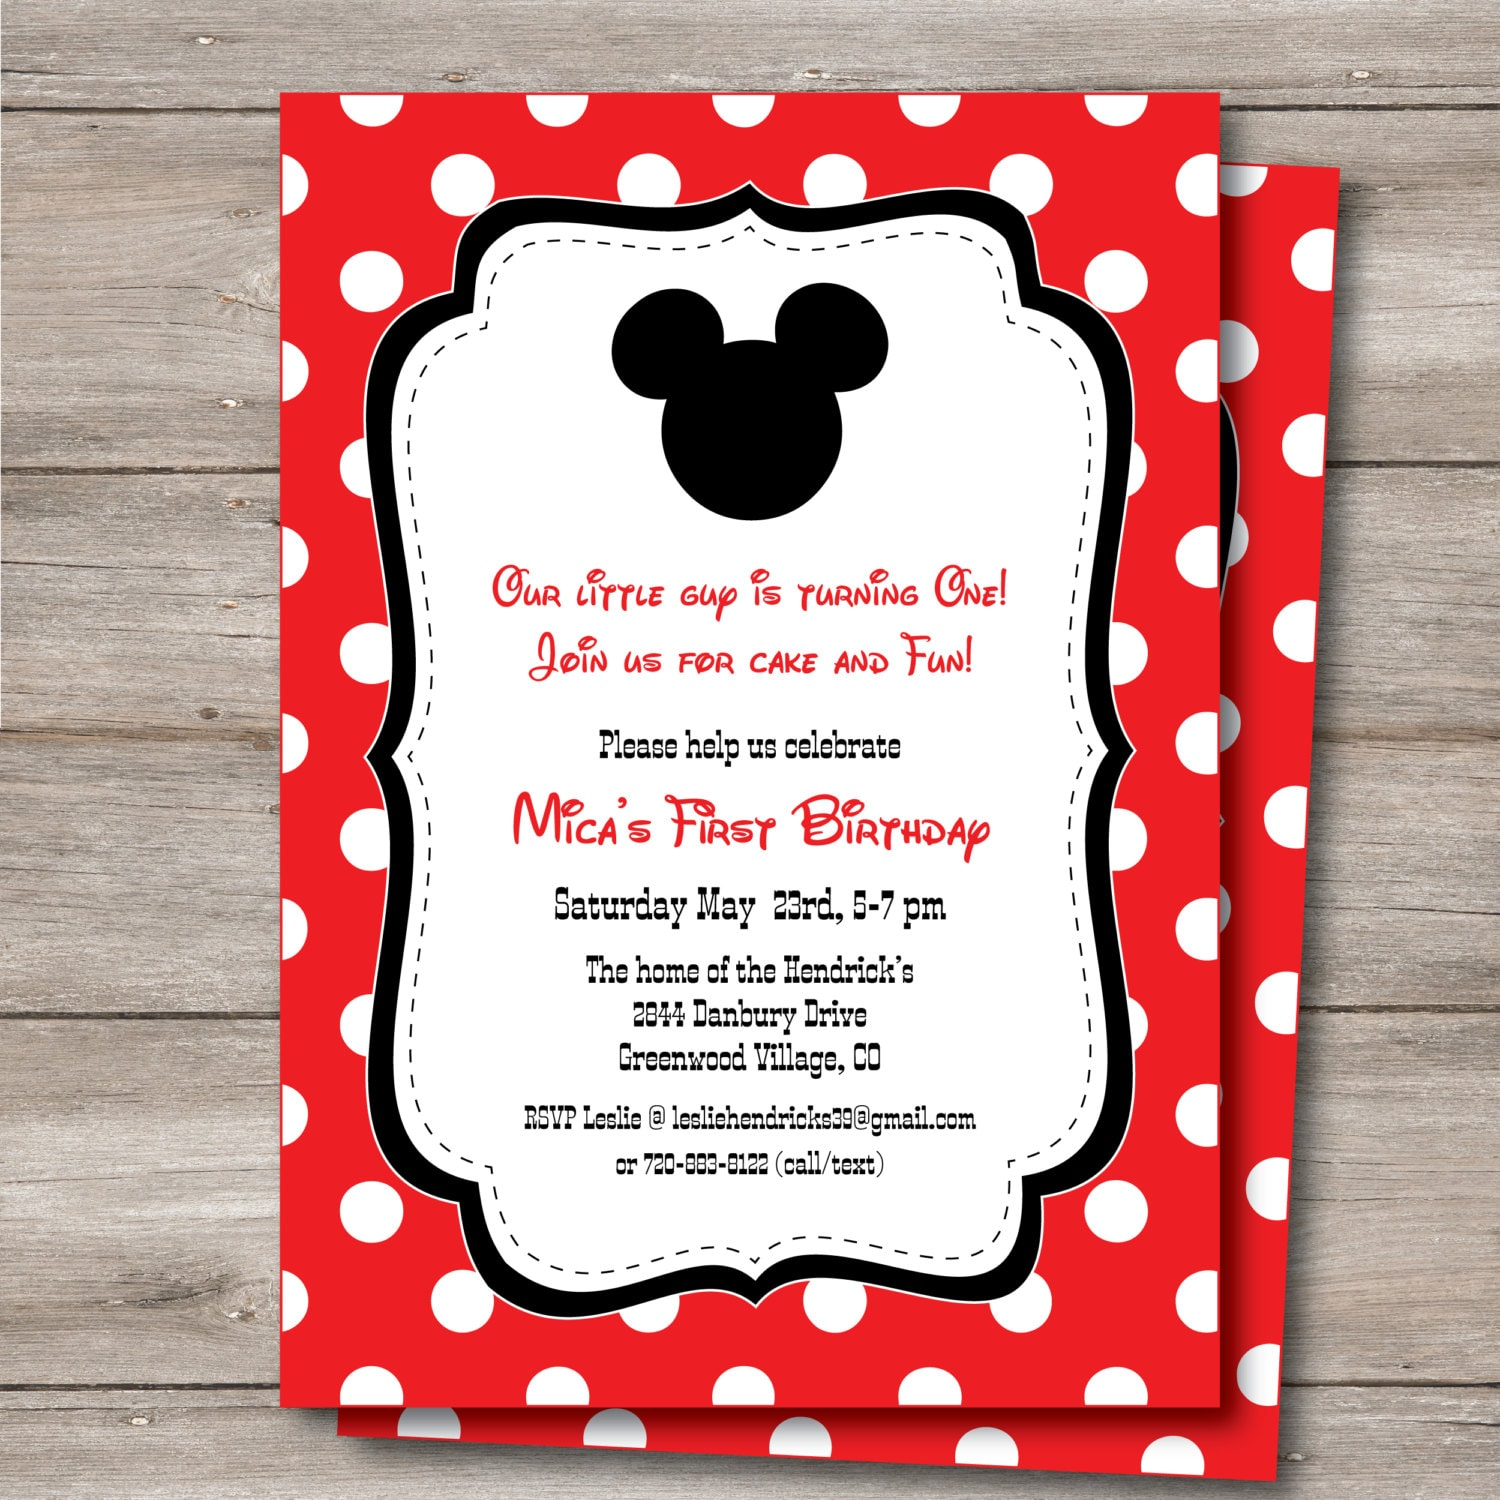 Mickey Mouse Invitation with Editable Text to Print at Home